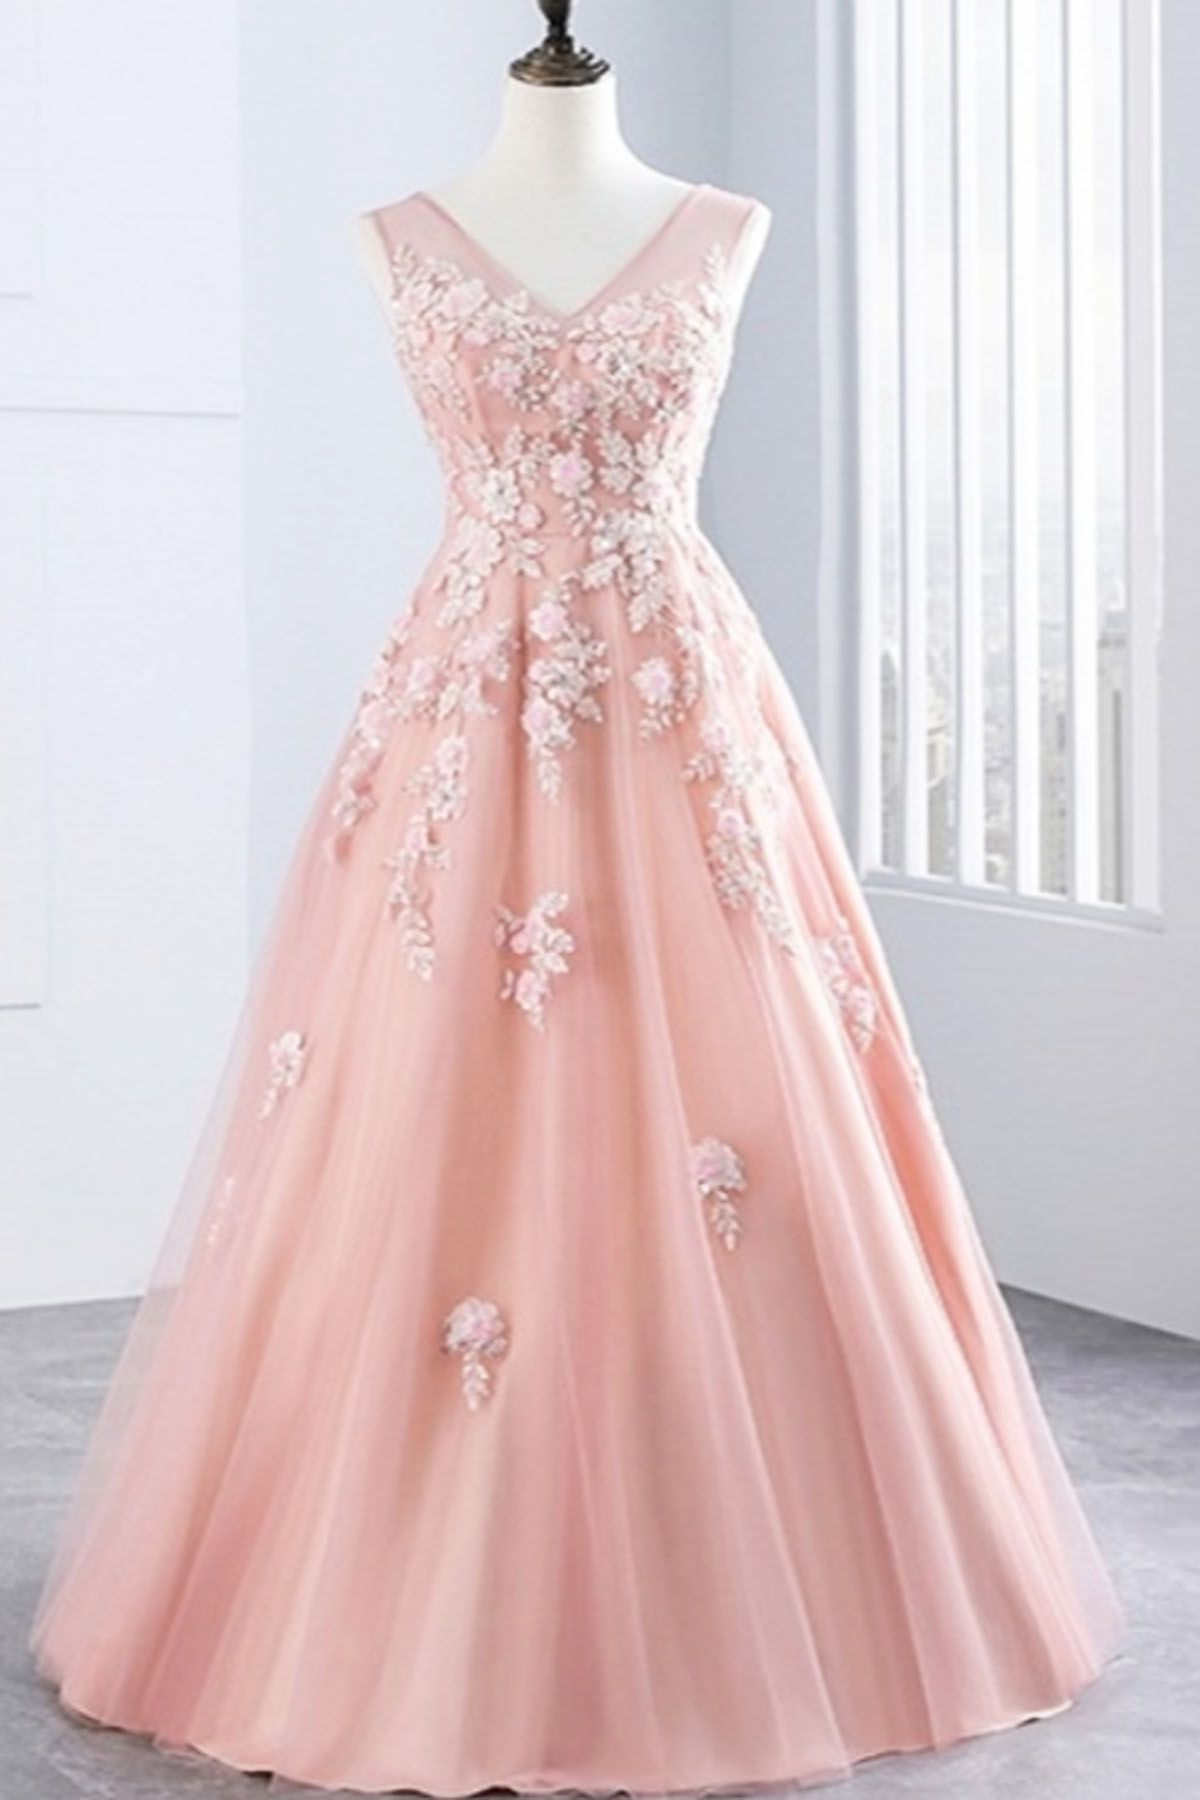 Prom dressesnew prom dressstylish pink tulle long v neck lace up